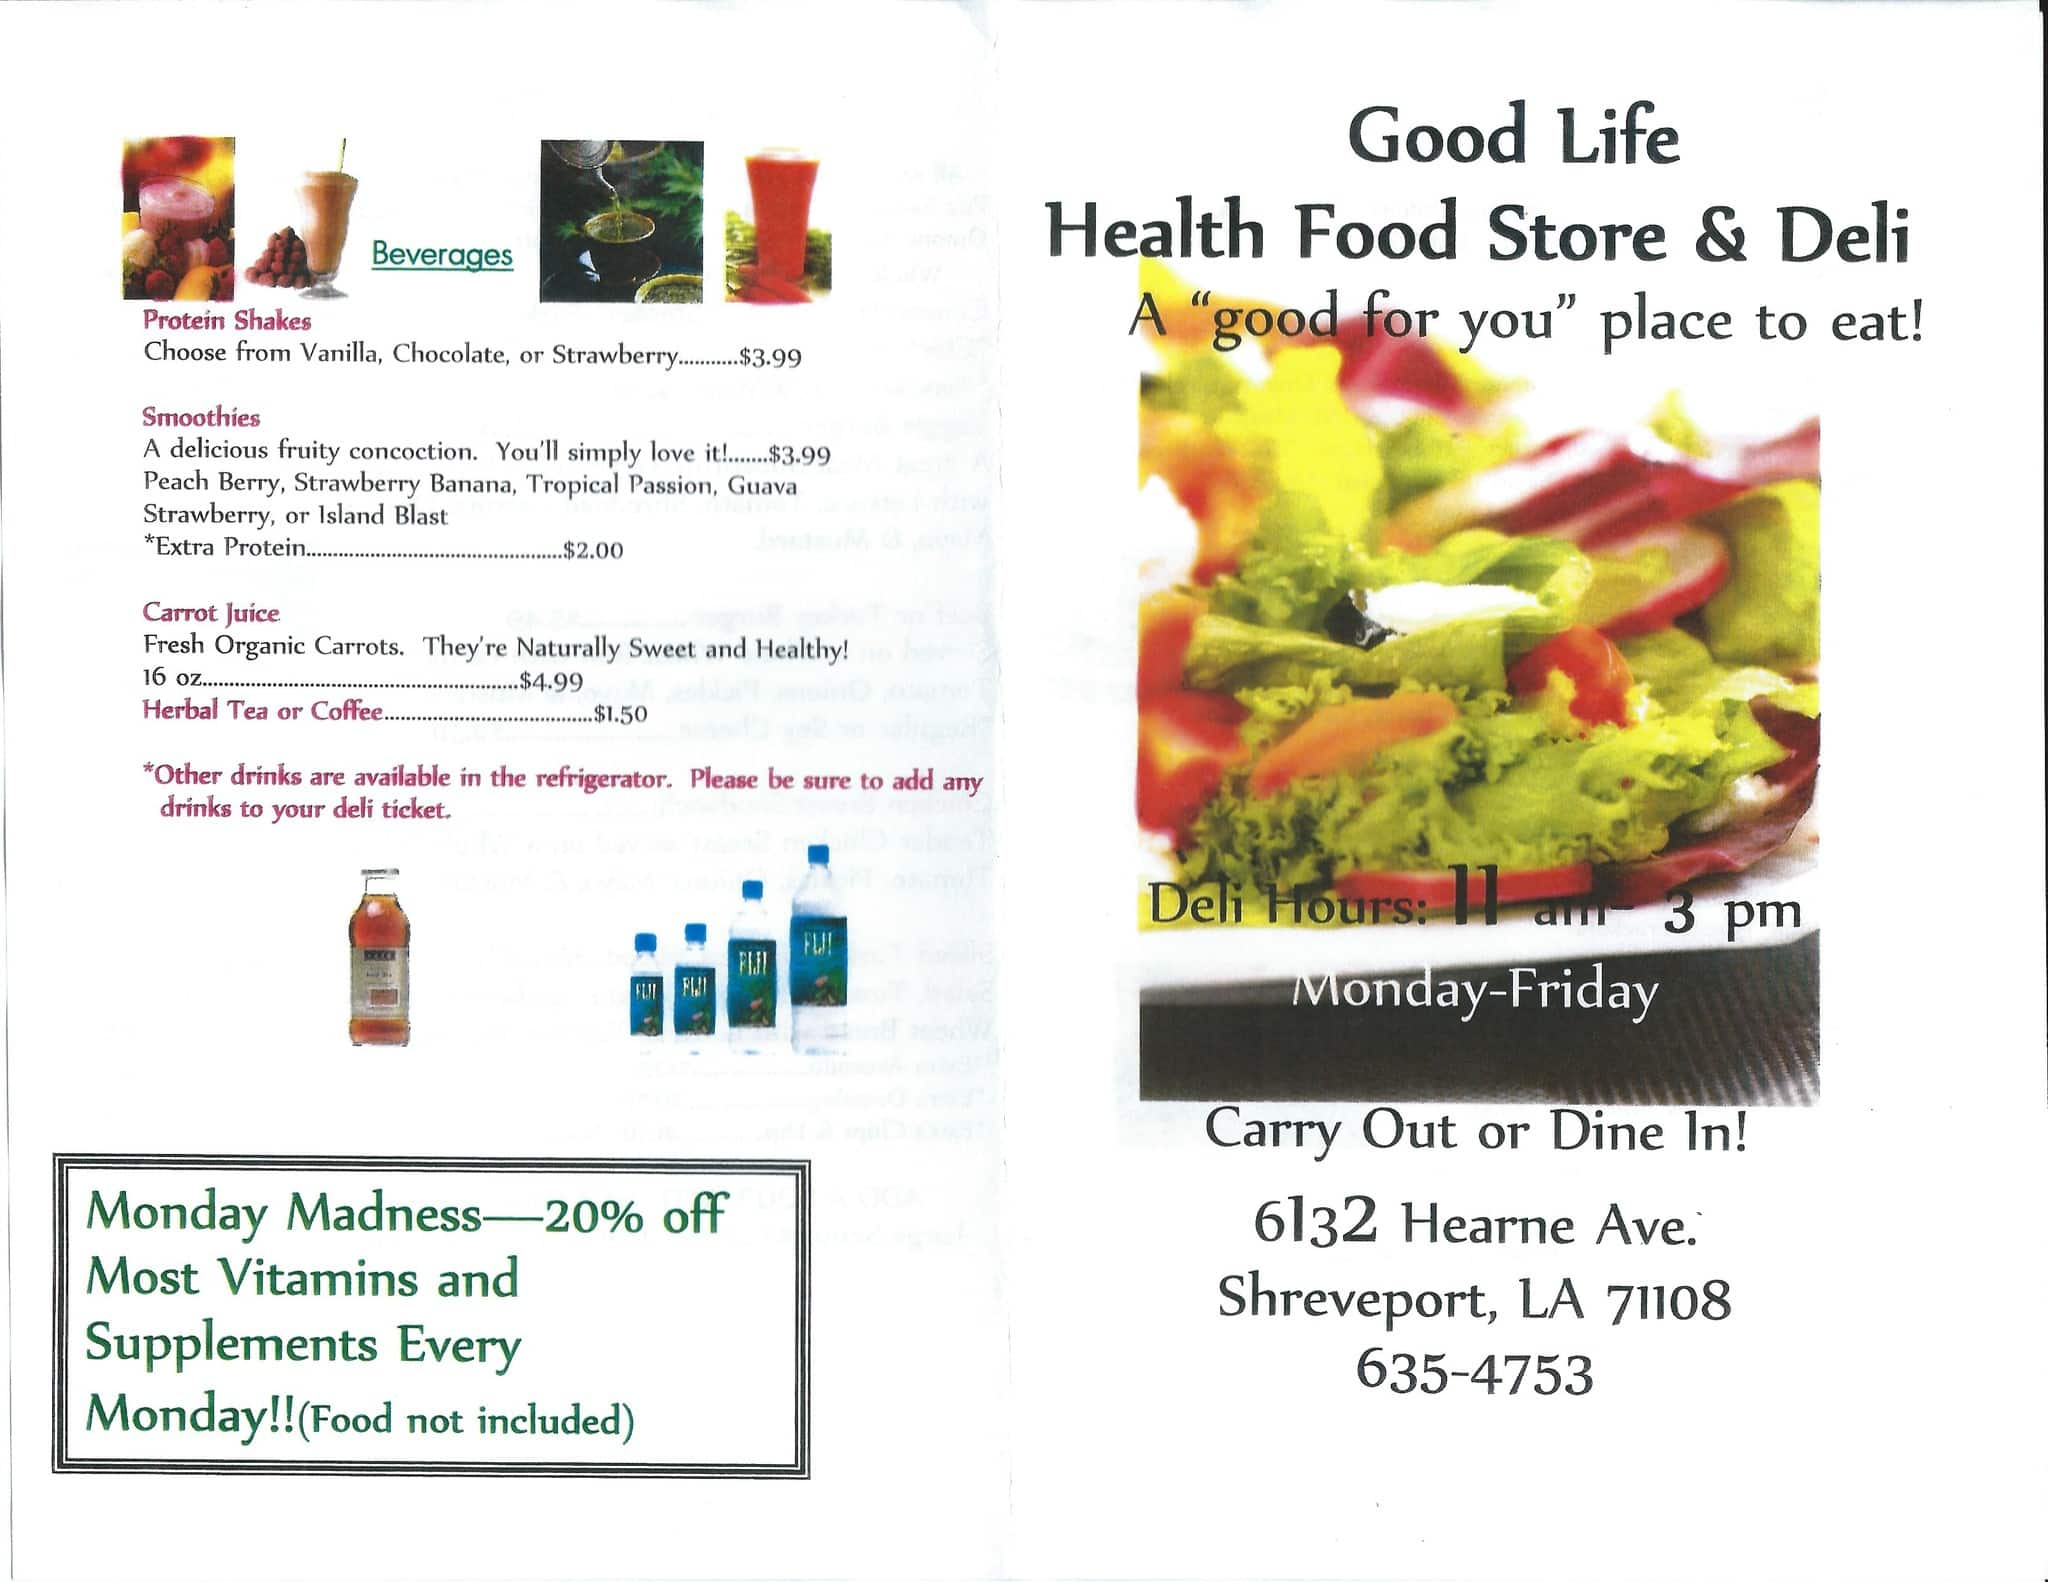 Food and good health - Good Life Health Food Store And Deli Shreveport Menu